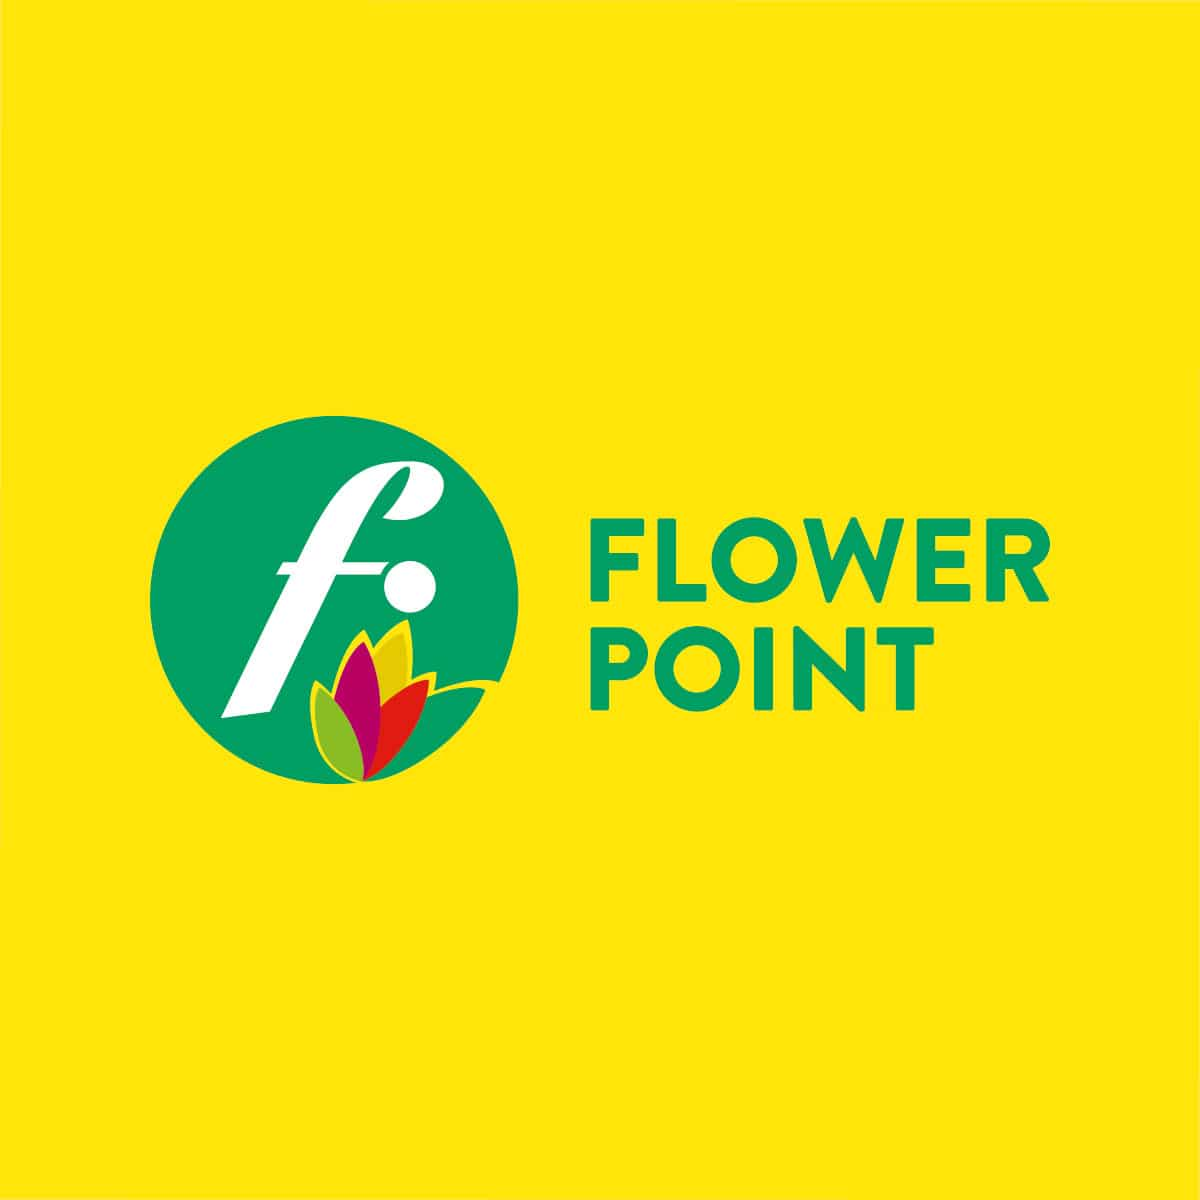 Flower Point – Blumen